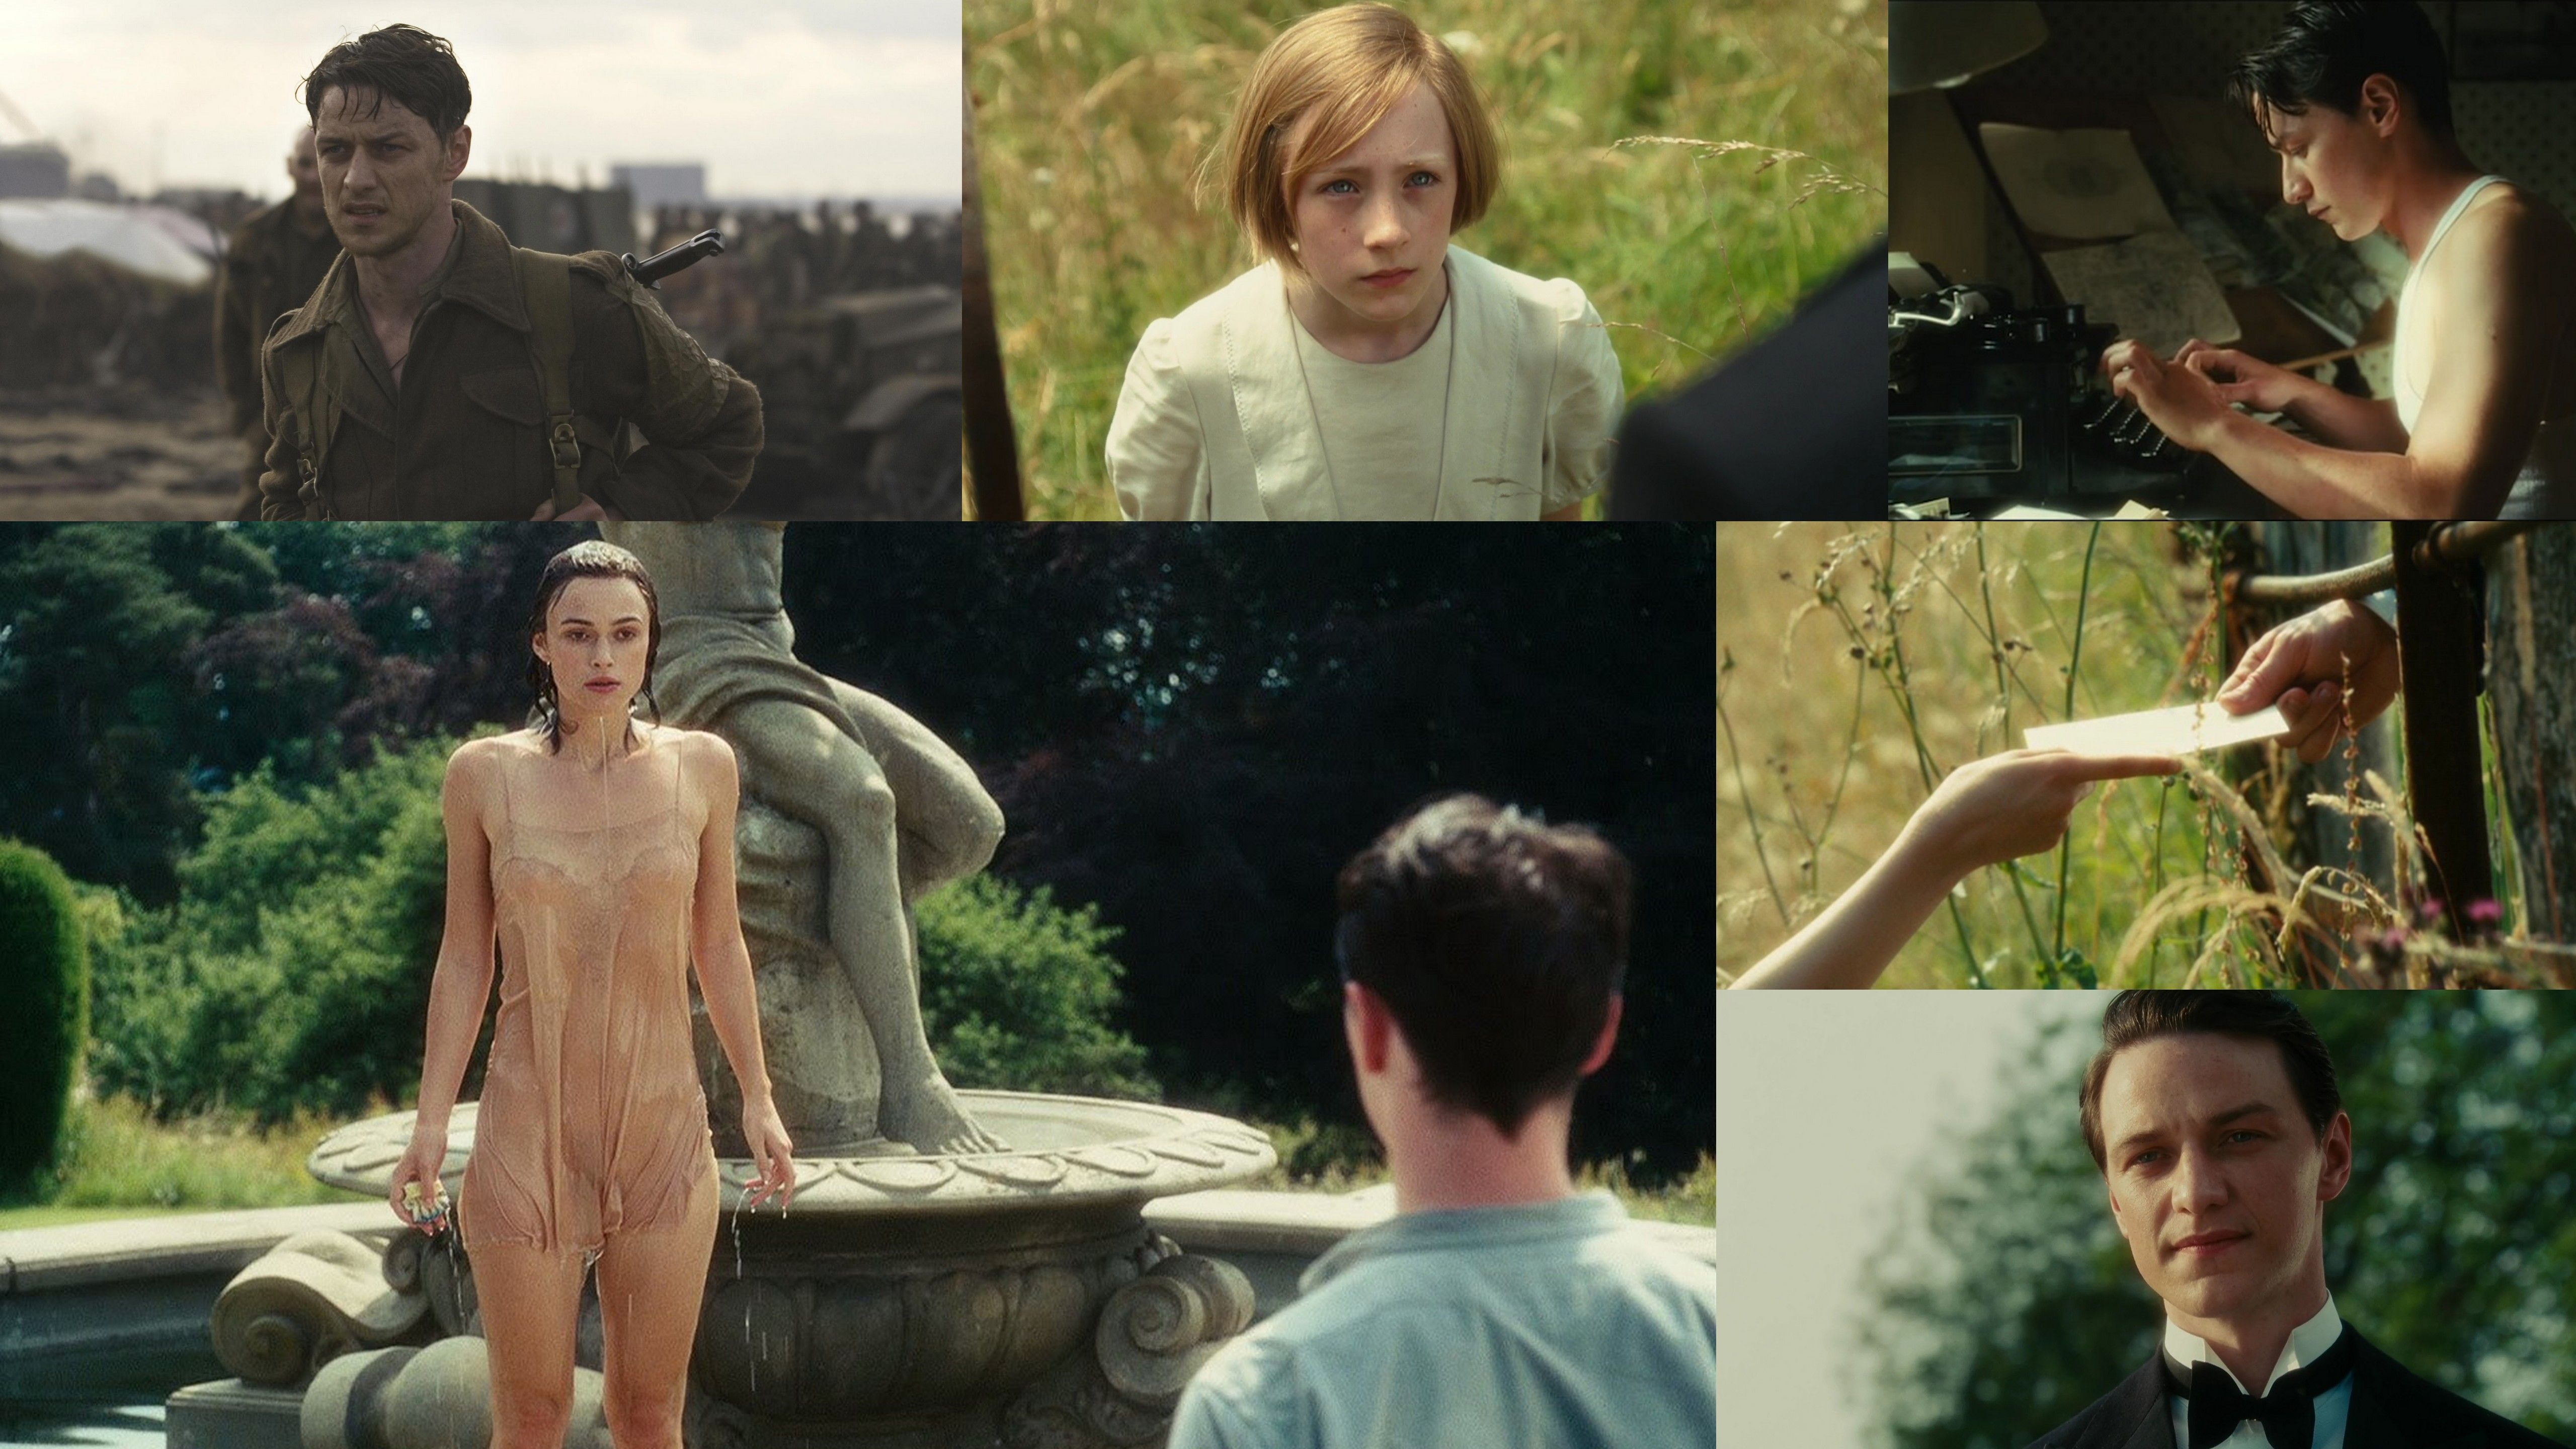 Atonement, starring Keira Knightly, James McAvoy and Saoirse Ronan. 2007